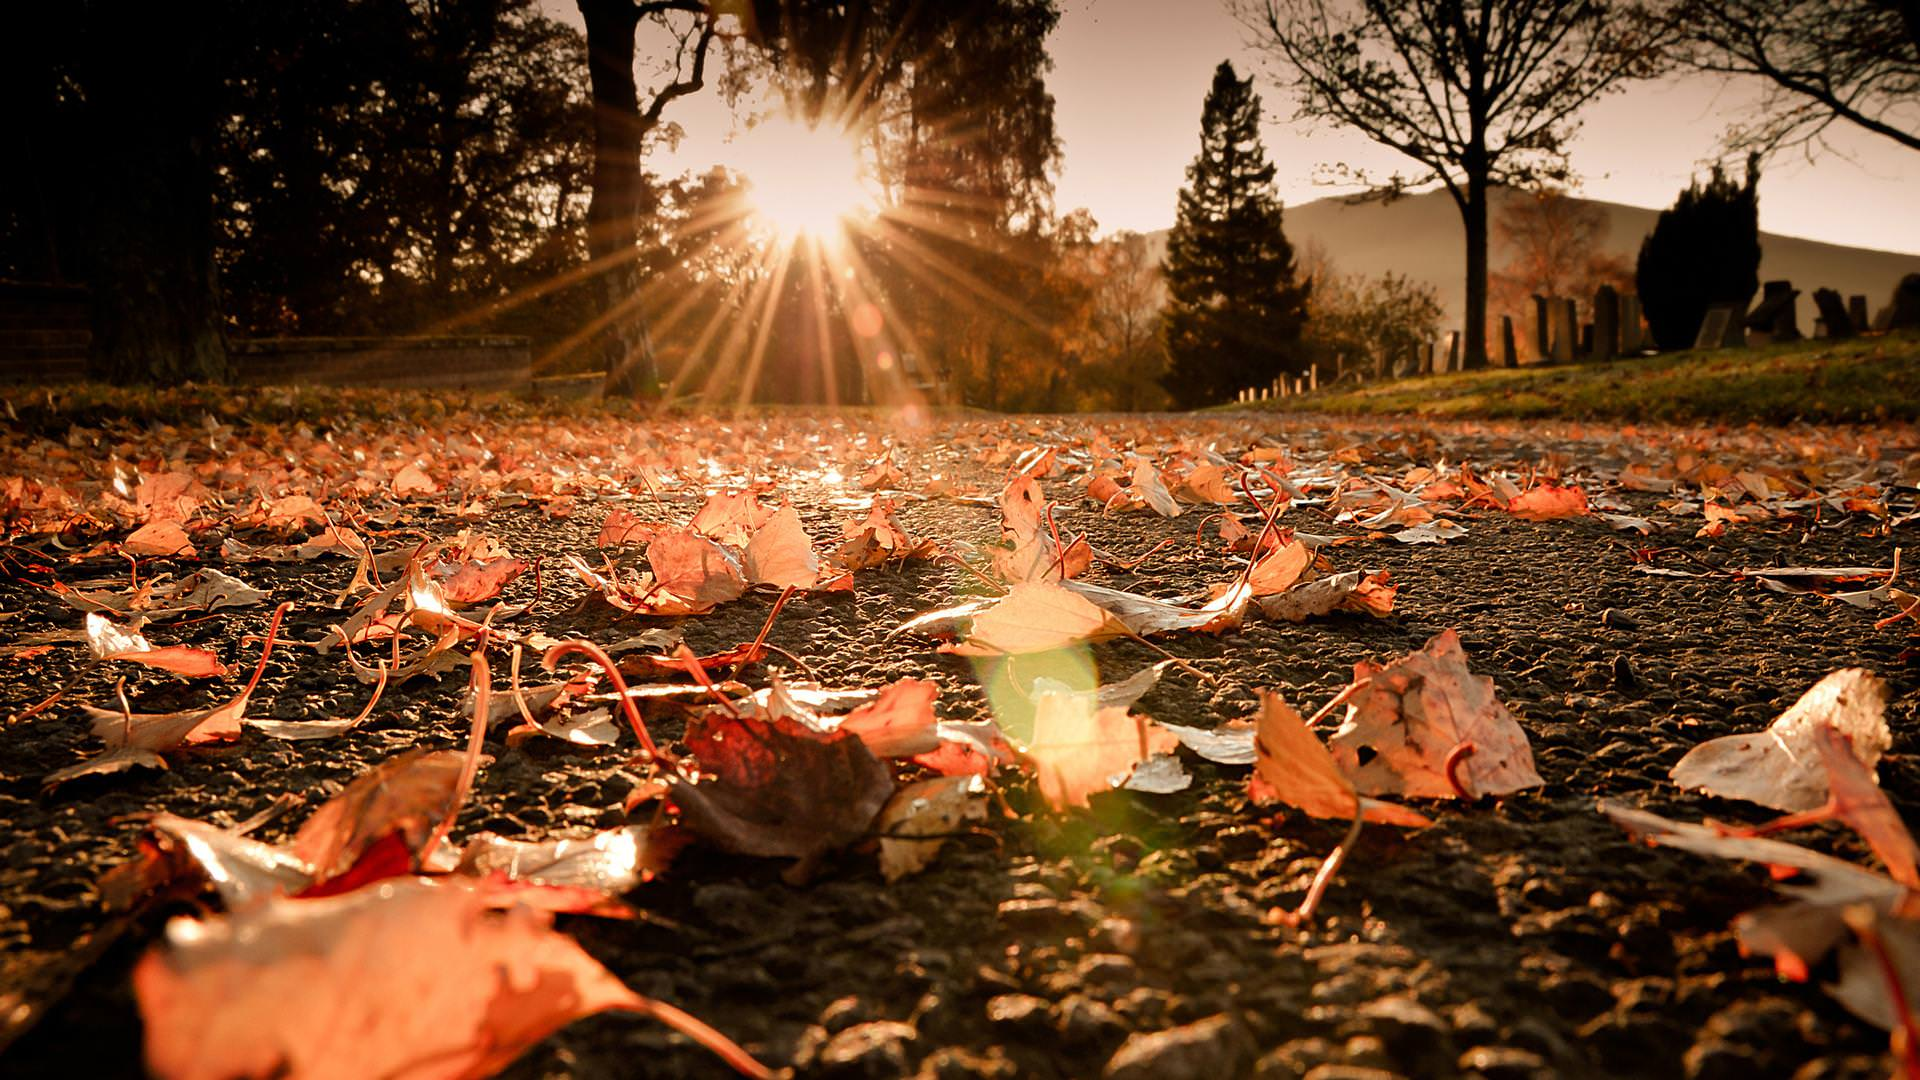 November Fall Wallpaper 22 Sunshine Wallpapers Sunrise Backgrounds Images